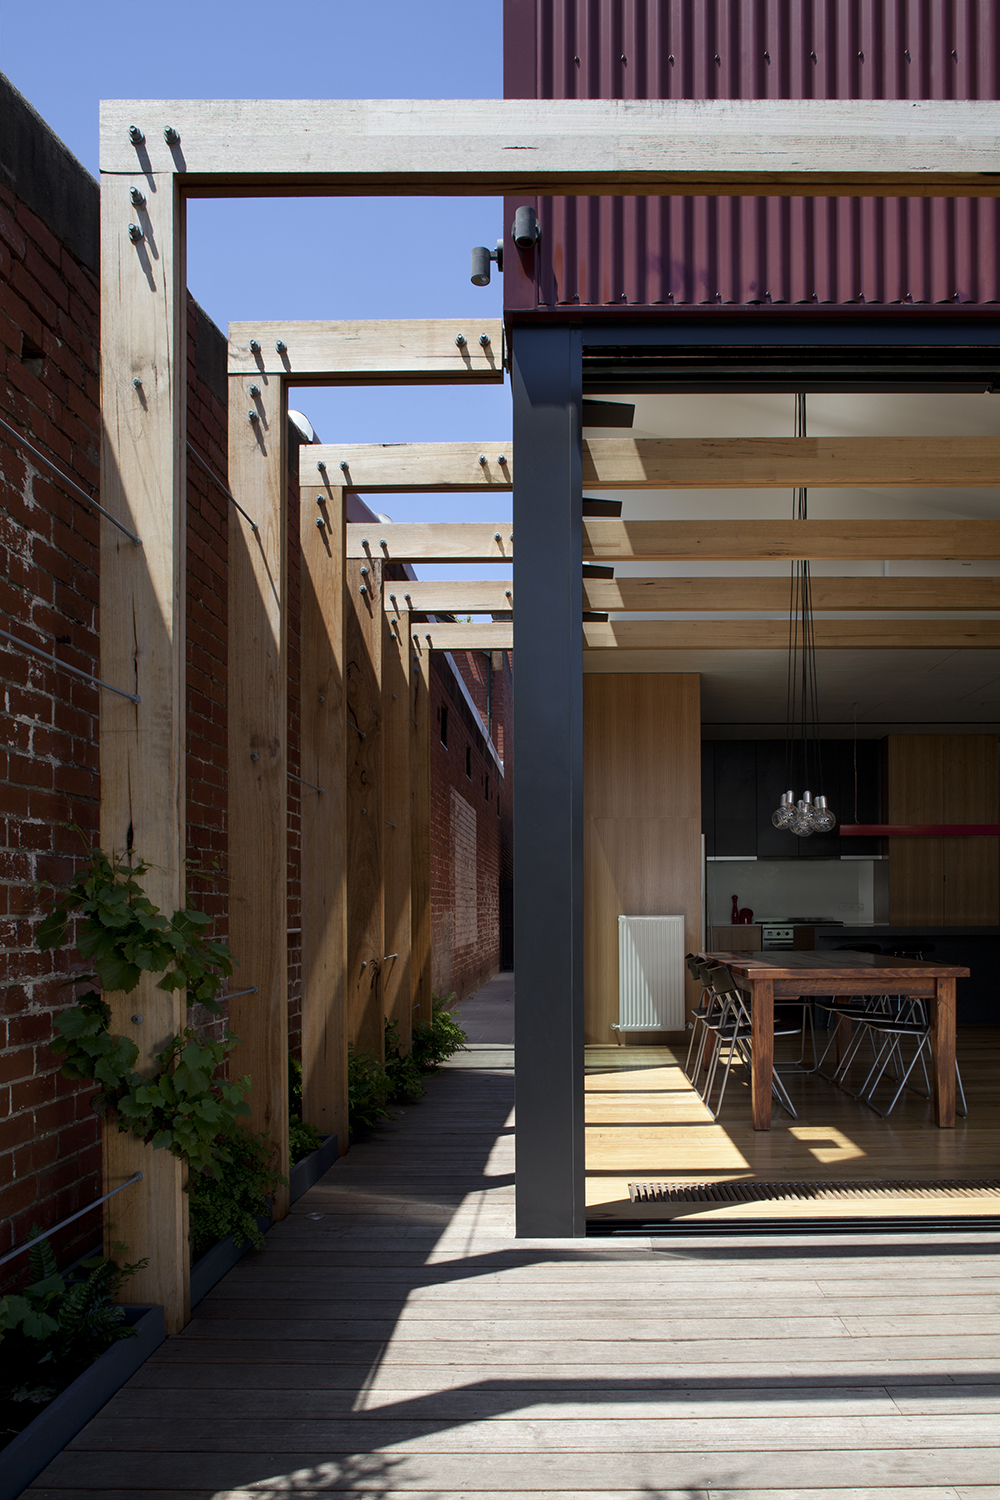 Gallery Of Clifton Hill House By Bent Architecture Local Australian Residential Design Clifton Hill, Melbourne Image 1